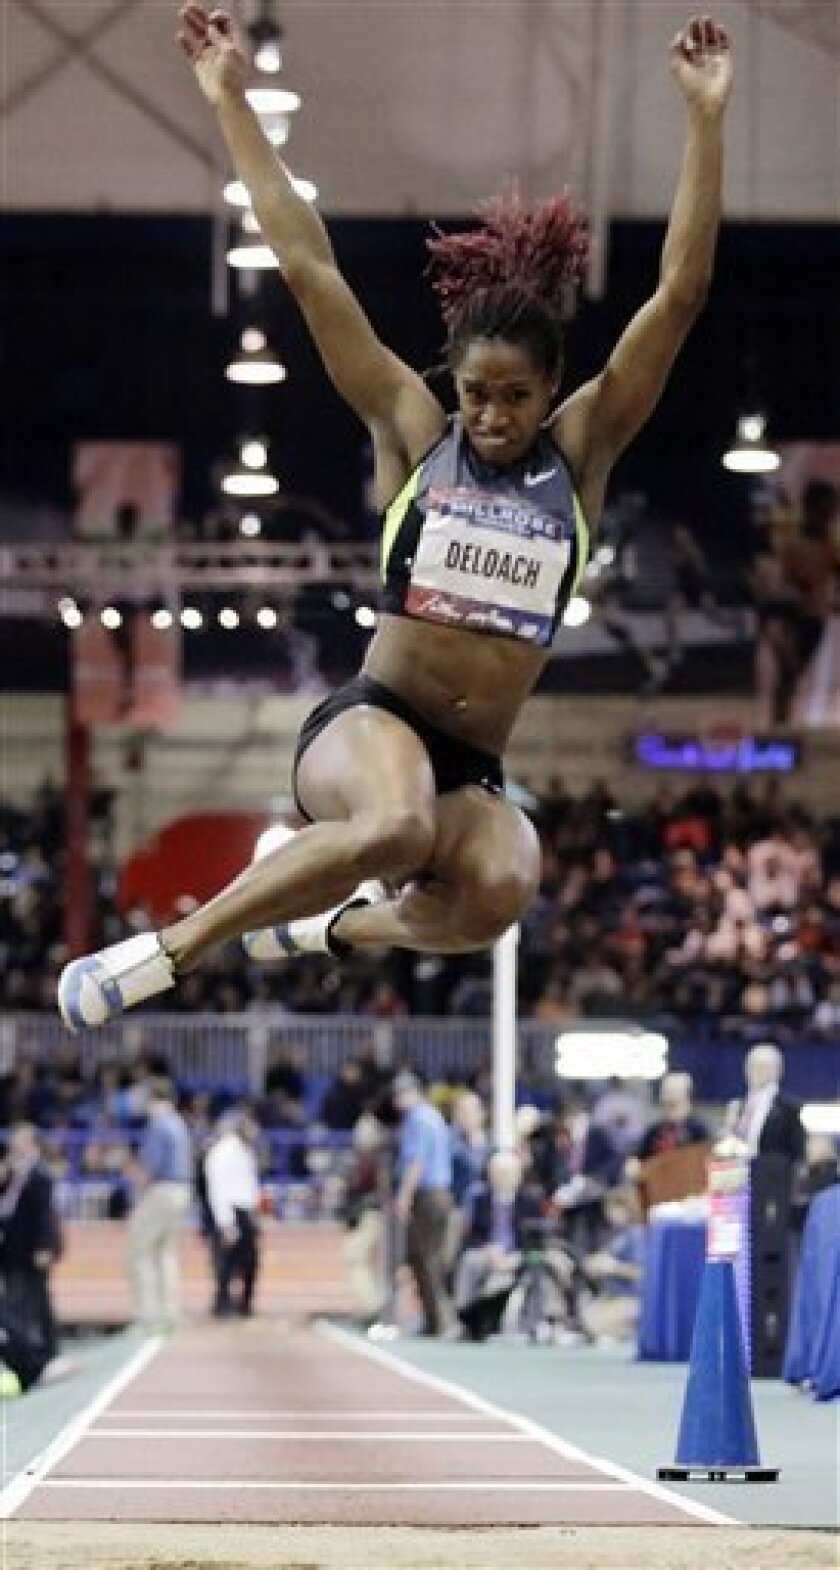 Janay DeLoach competes in the women's long jump during the 106th Millrose Games on Saturday, Feb. 16, 2013, in New York. DeLoach won the event with a jump of 22-7 3/4. (AP Photo/Frank Franklin II)